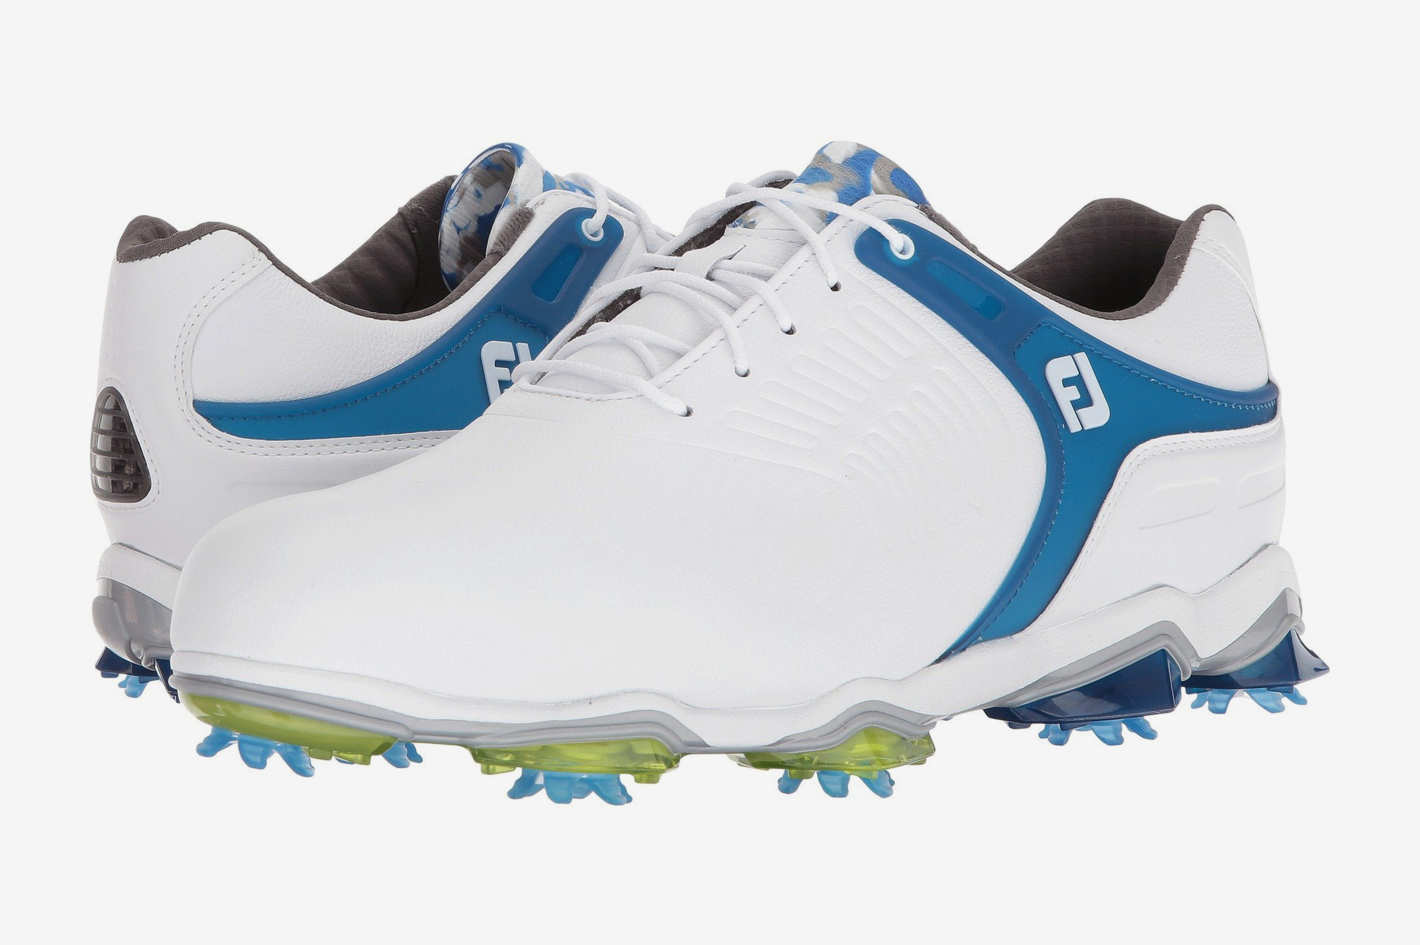 Tour S Footjoy Tour S Cleated Tpu Saddle Strap